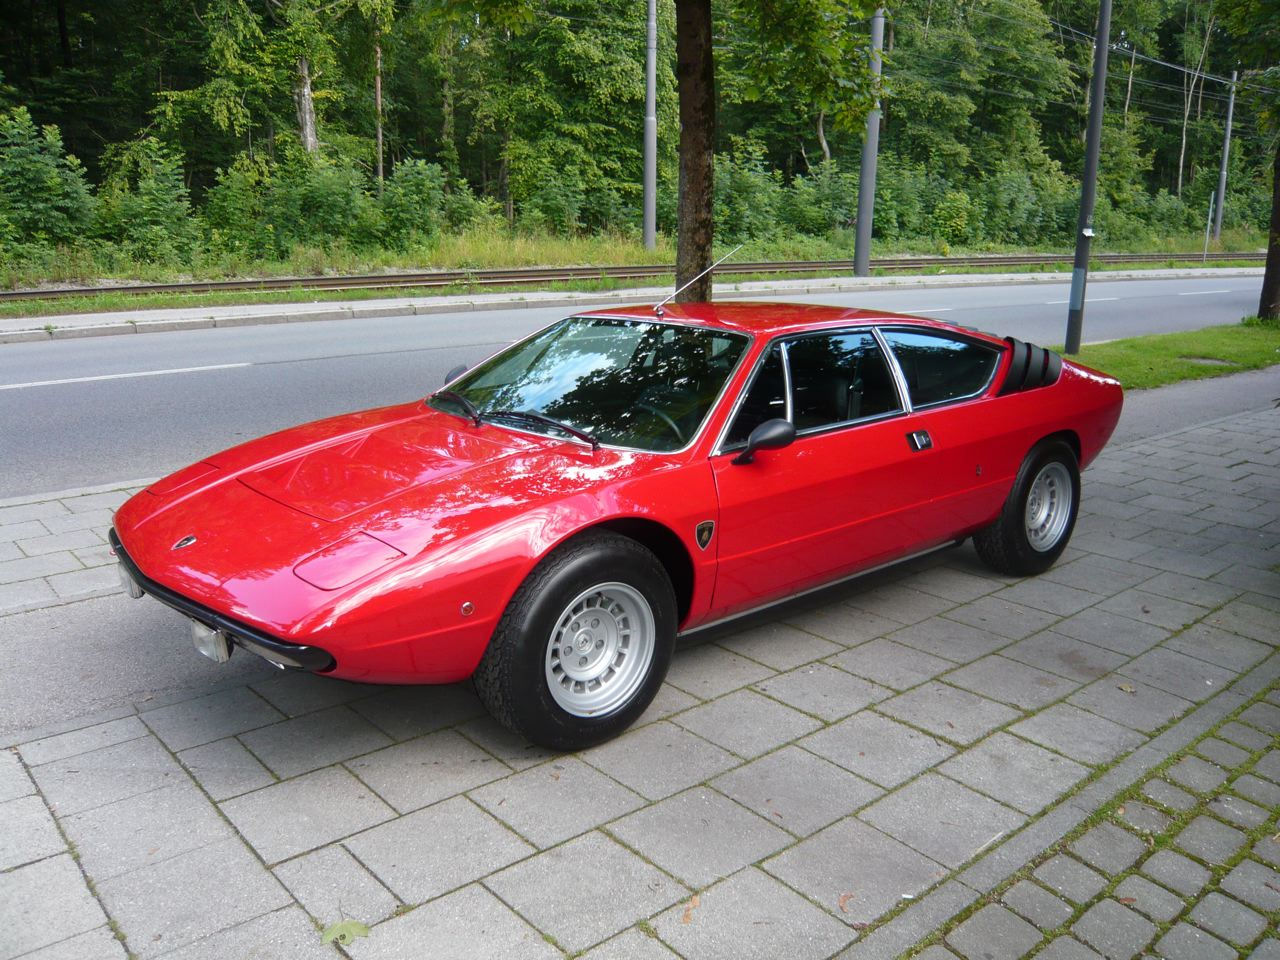 This is how the barn find car could look after a competent restoration. (Picture courtesy lambo.dk).